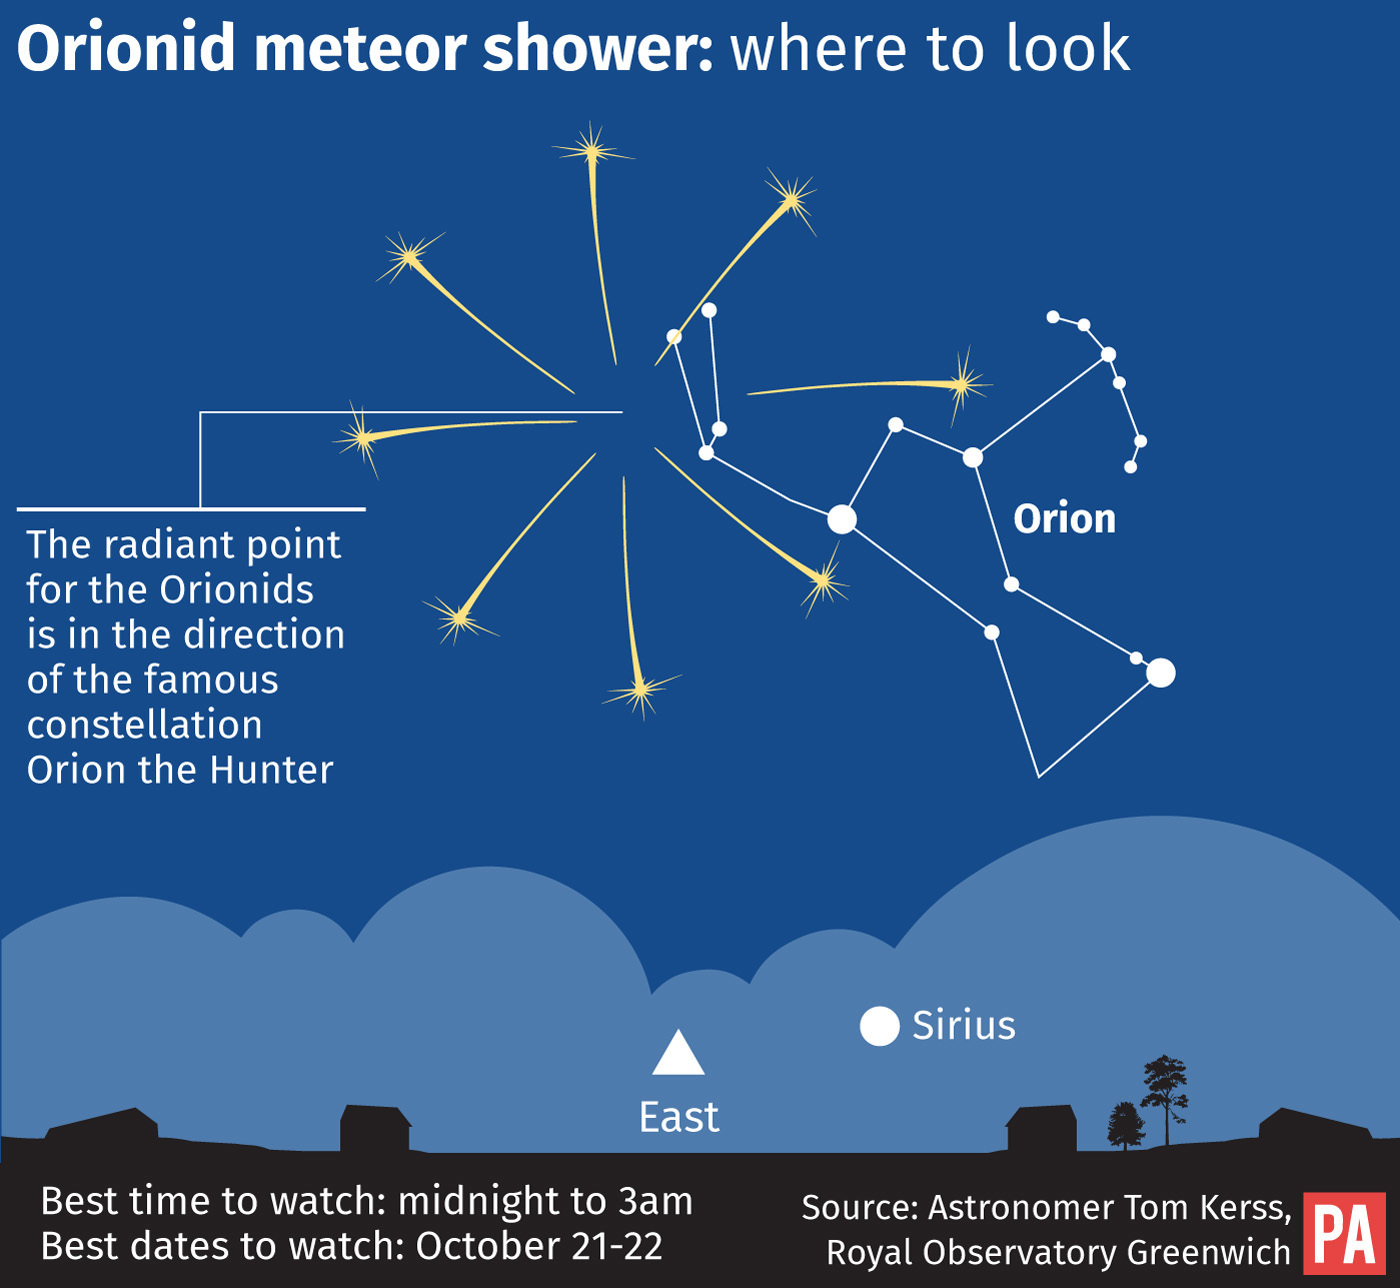 Orionid meteor shower, best times to view and where to look